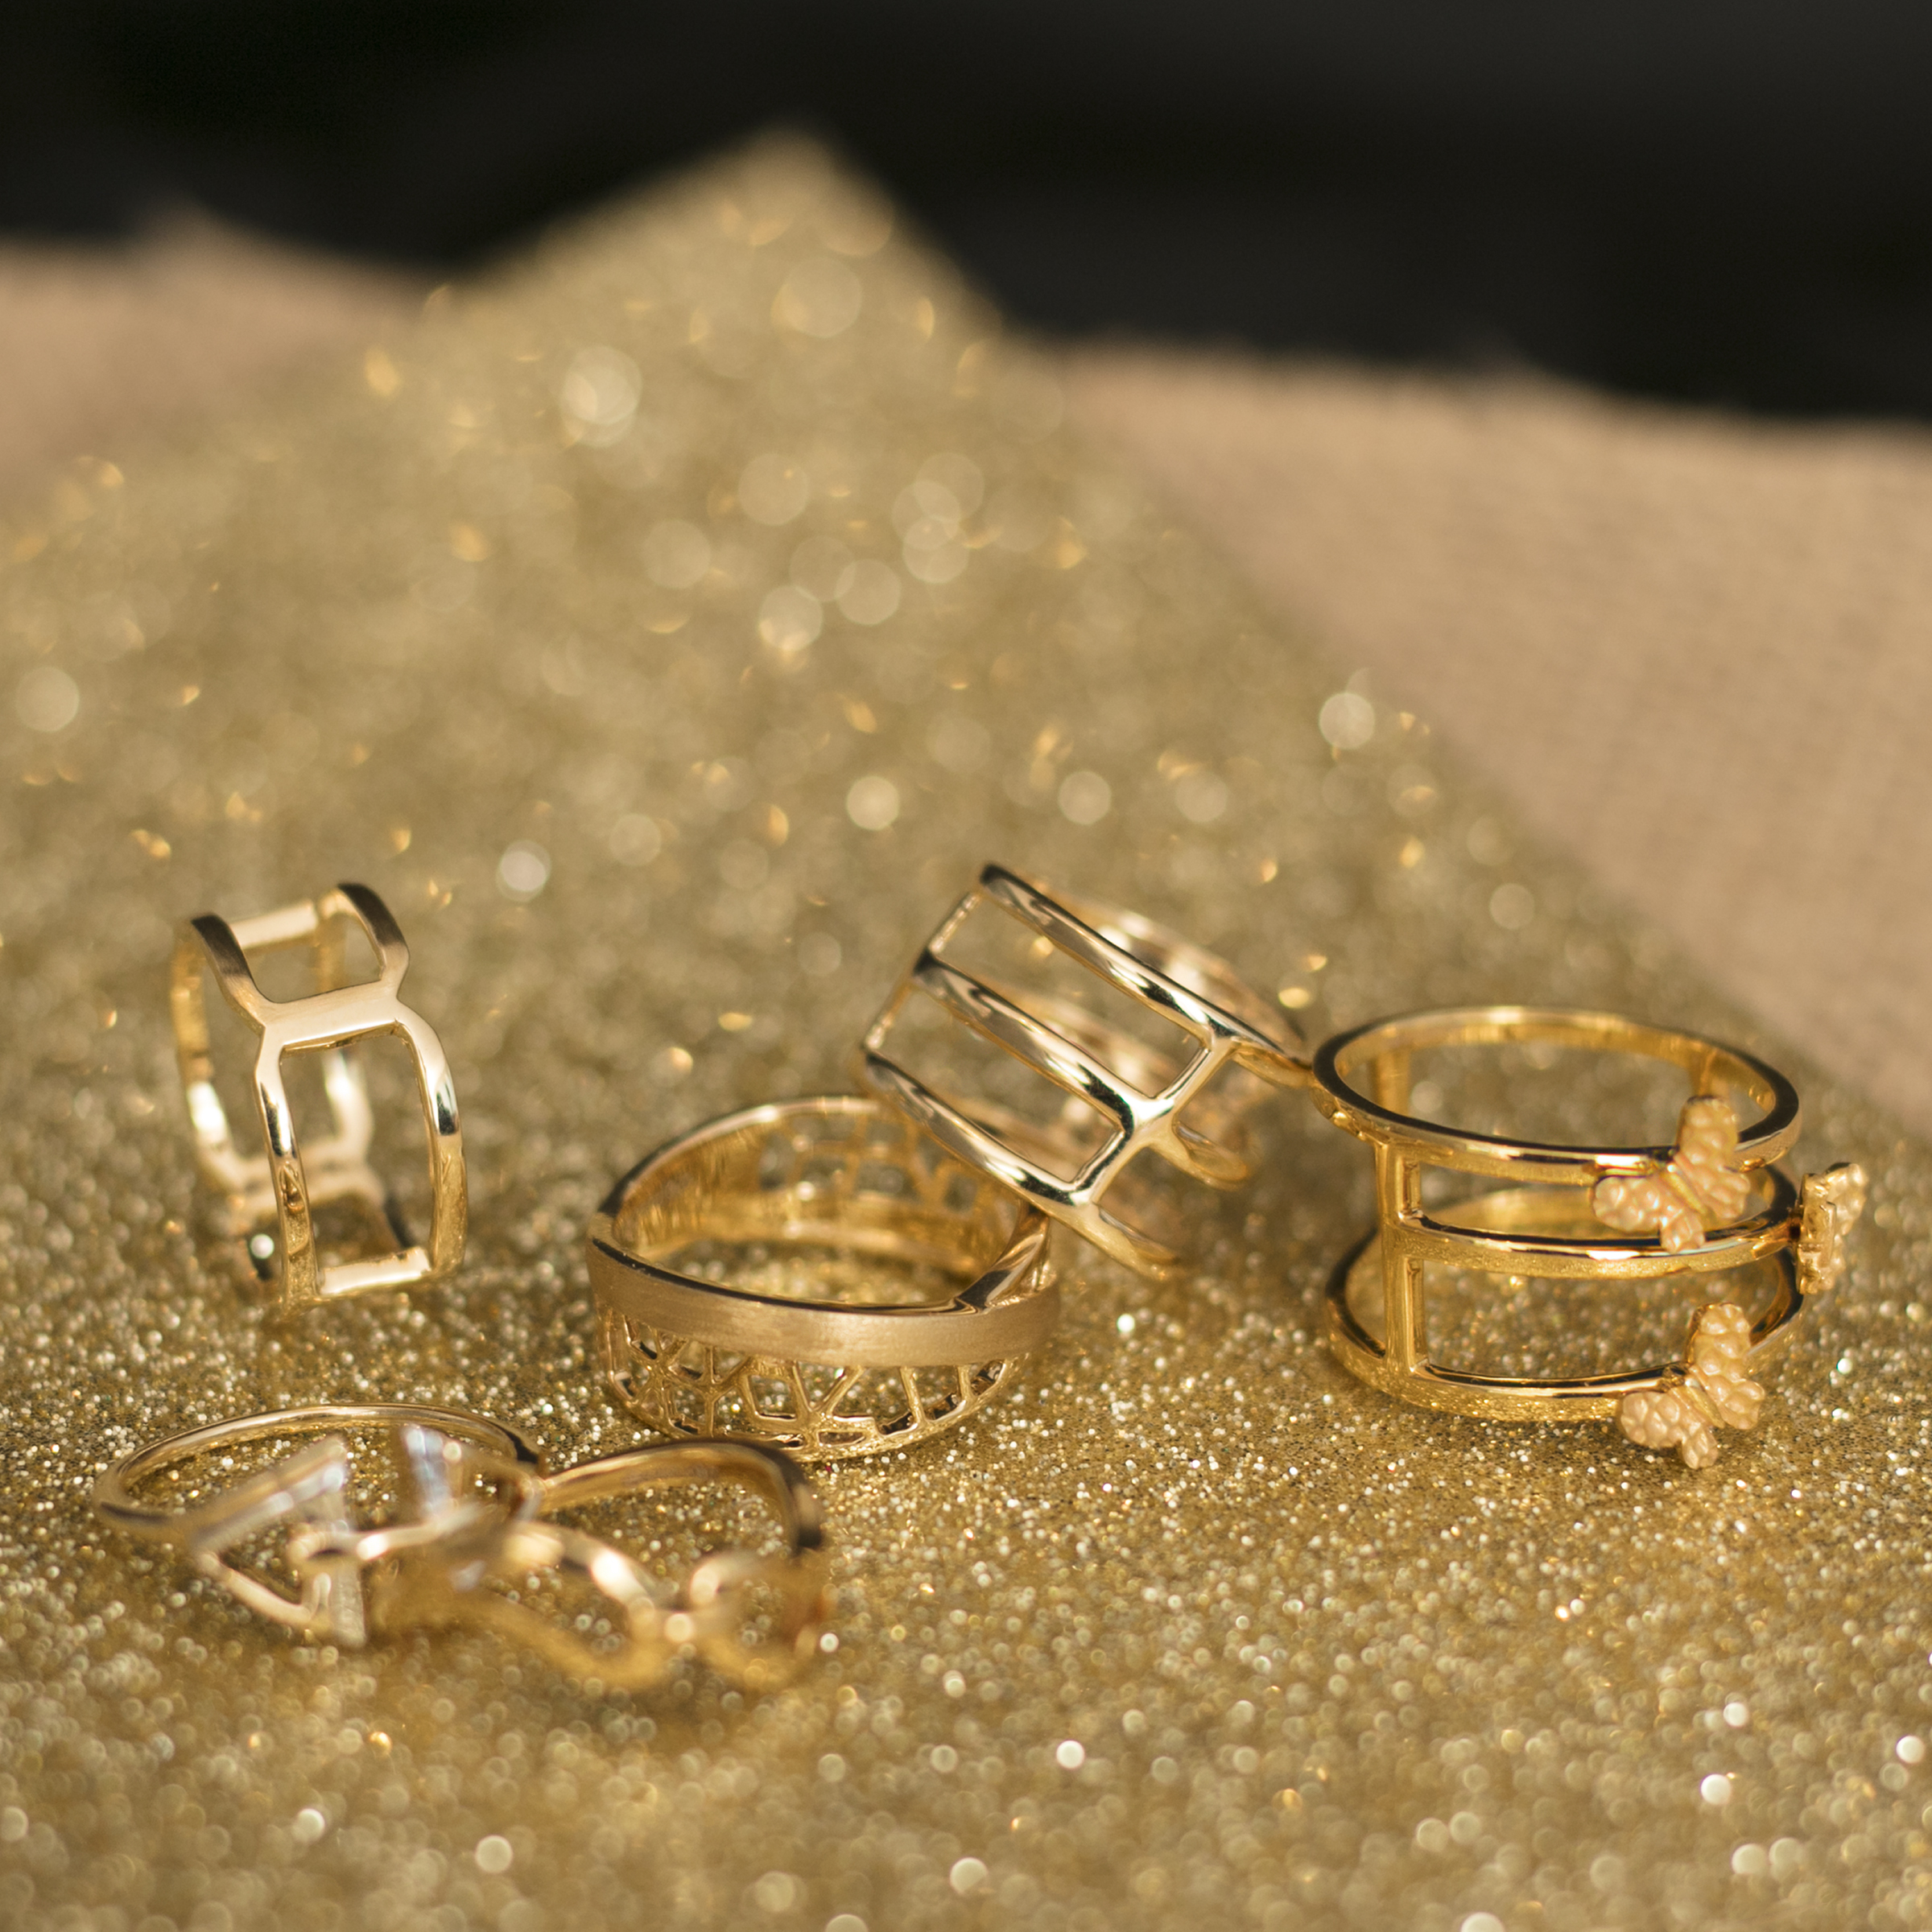 5 Things to Know About Gold Jewellery #melorra